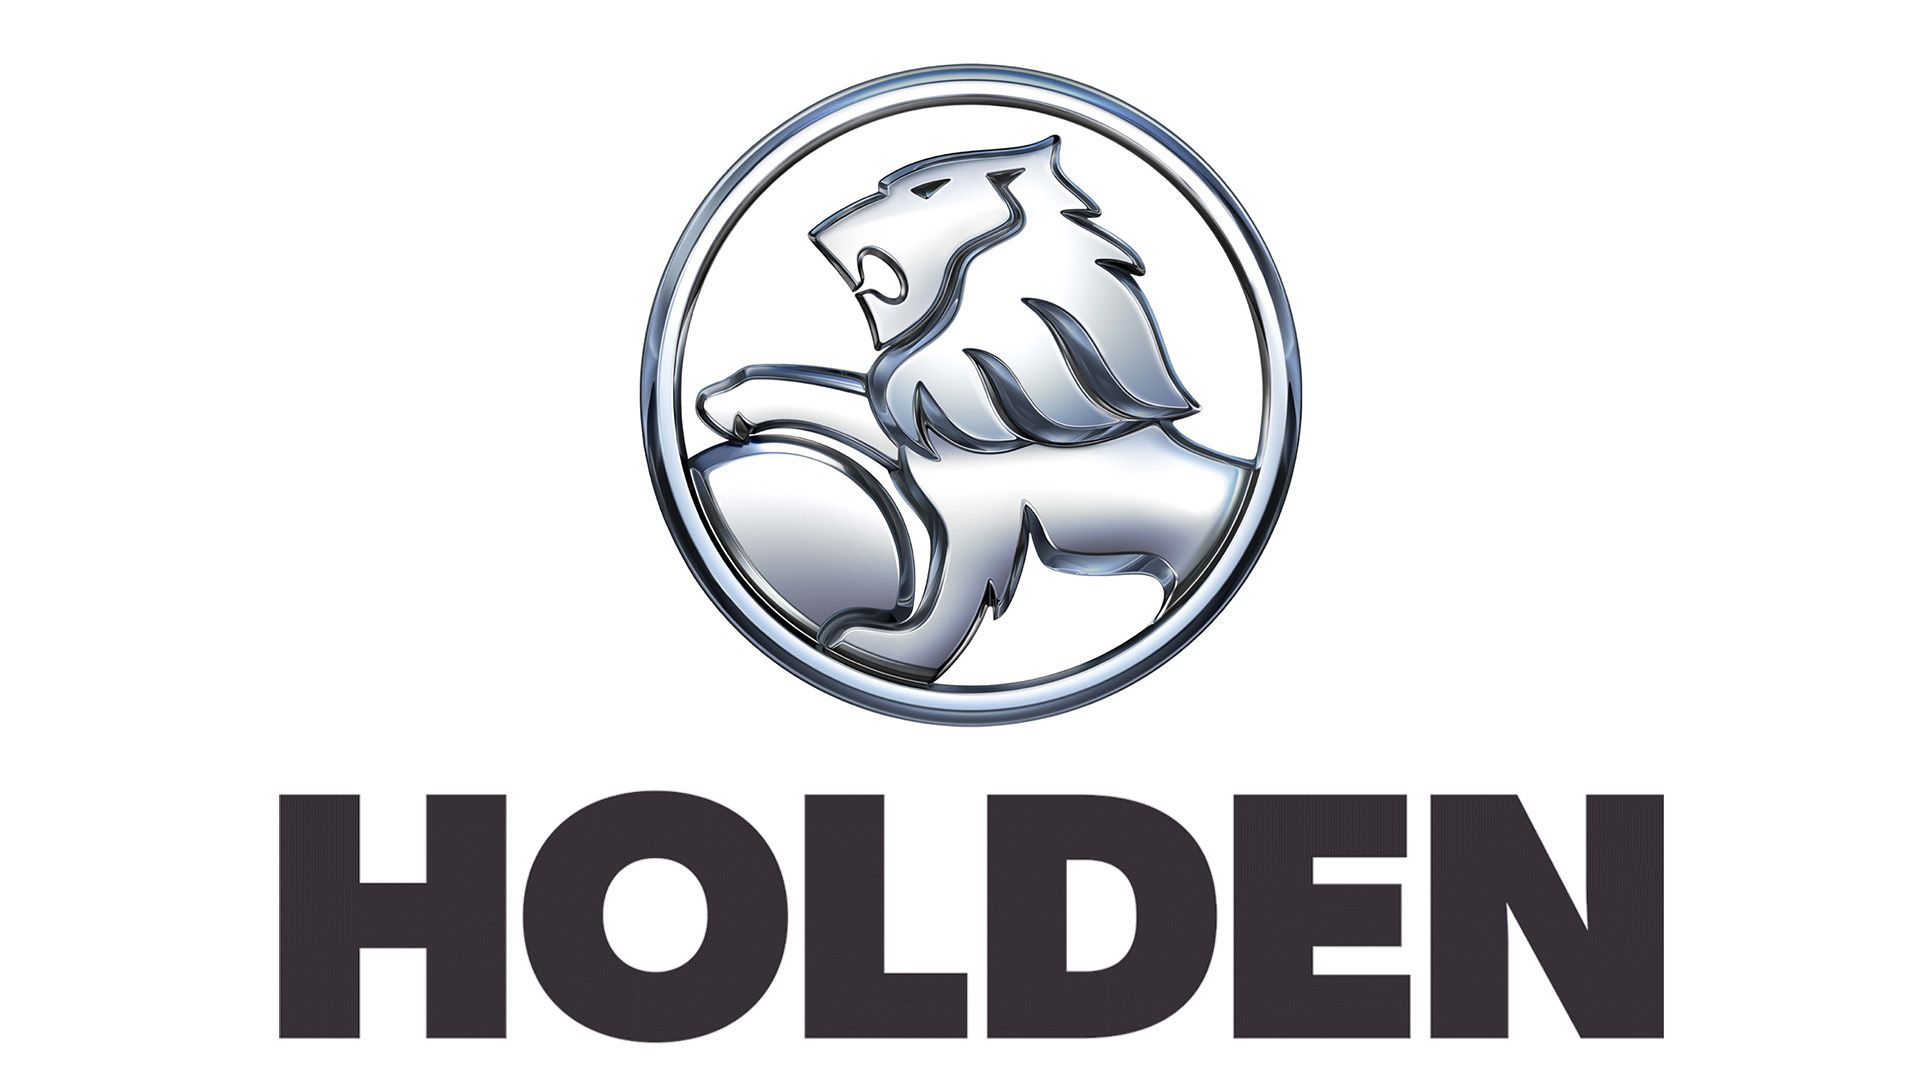 Holden Logo - Holden Logo, Holden Symbol, Meaning, History and Evolution